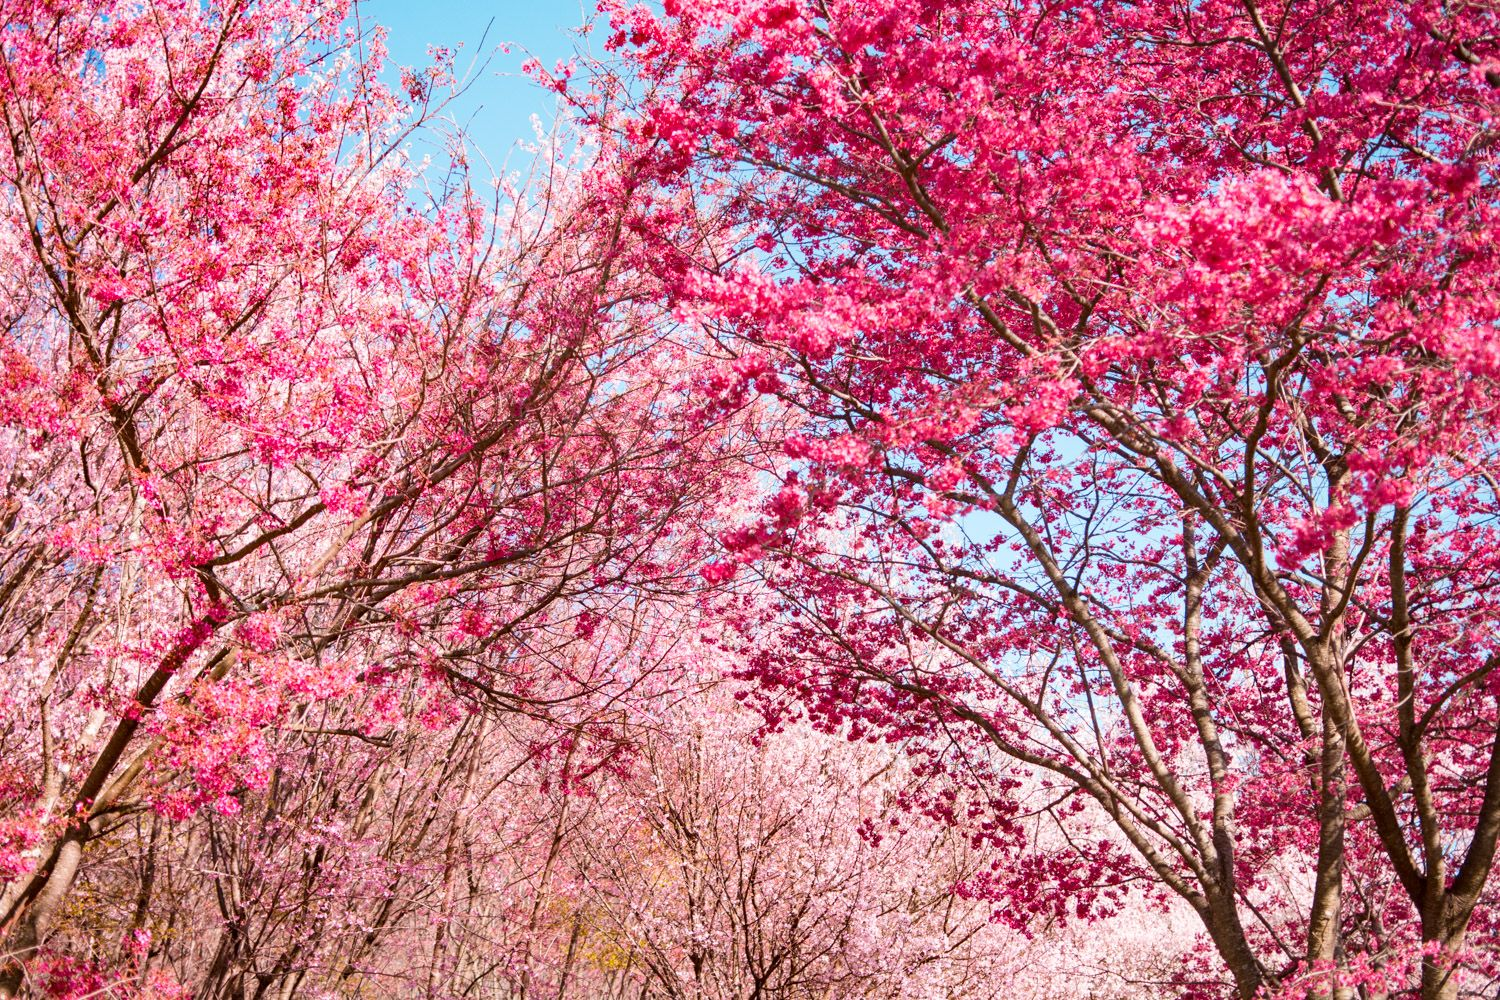 5 Secret Places To See Cherry Blossoms In Dc That Are Tourist Free 2021 Cherry Blossom Dc Cherry Blossom Washington Dc Cherry Blossom